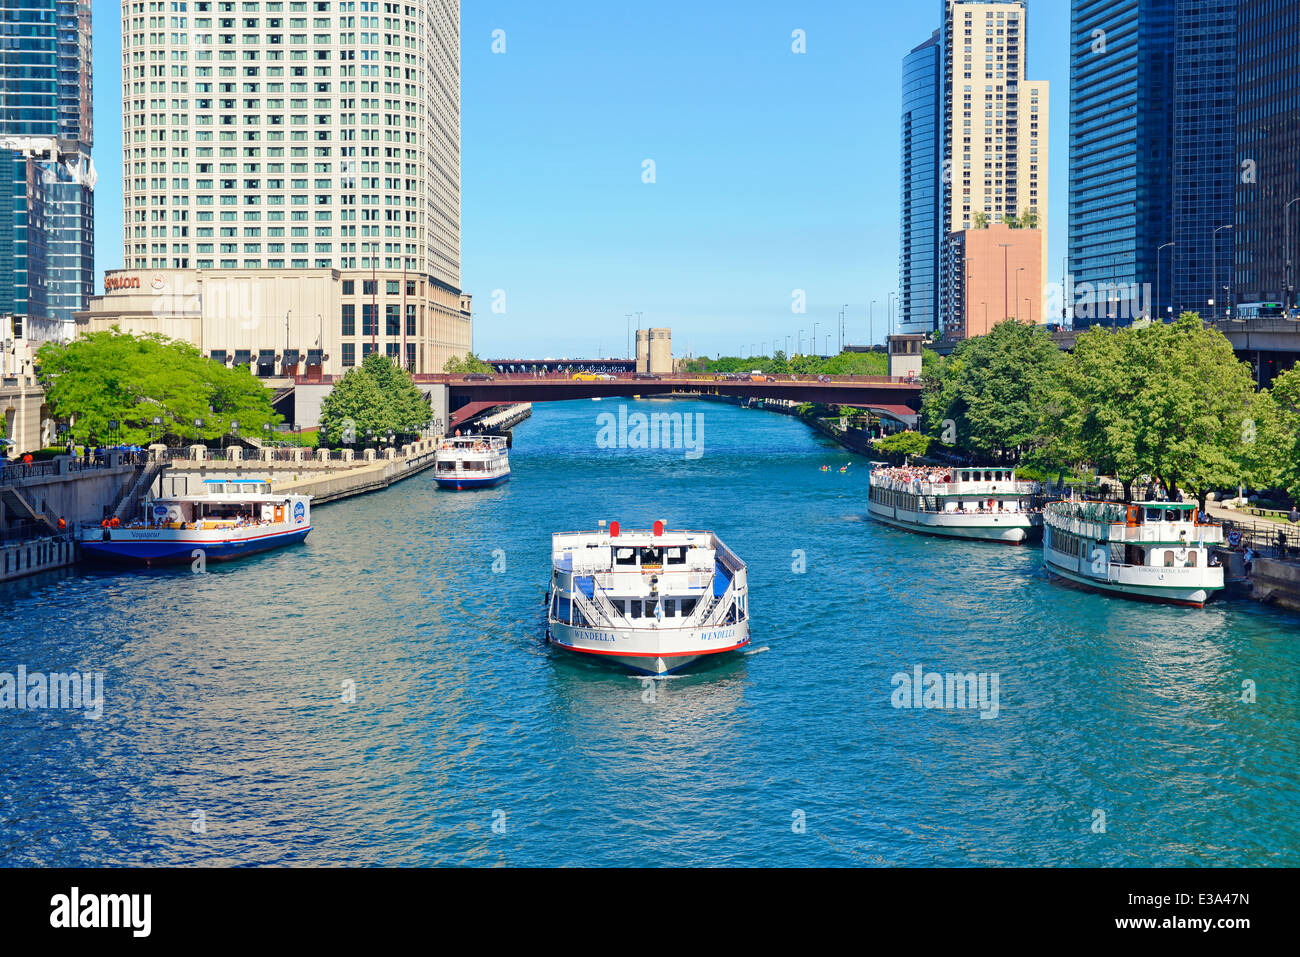 Tourist Cruise Boats on the Chicago River, and moored, lined up along the renowned Riverwalk, Illinois, USA; - Stock Image